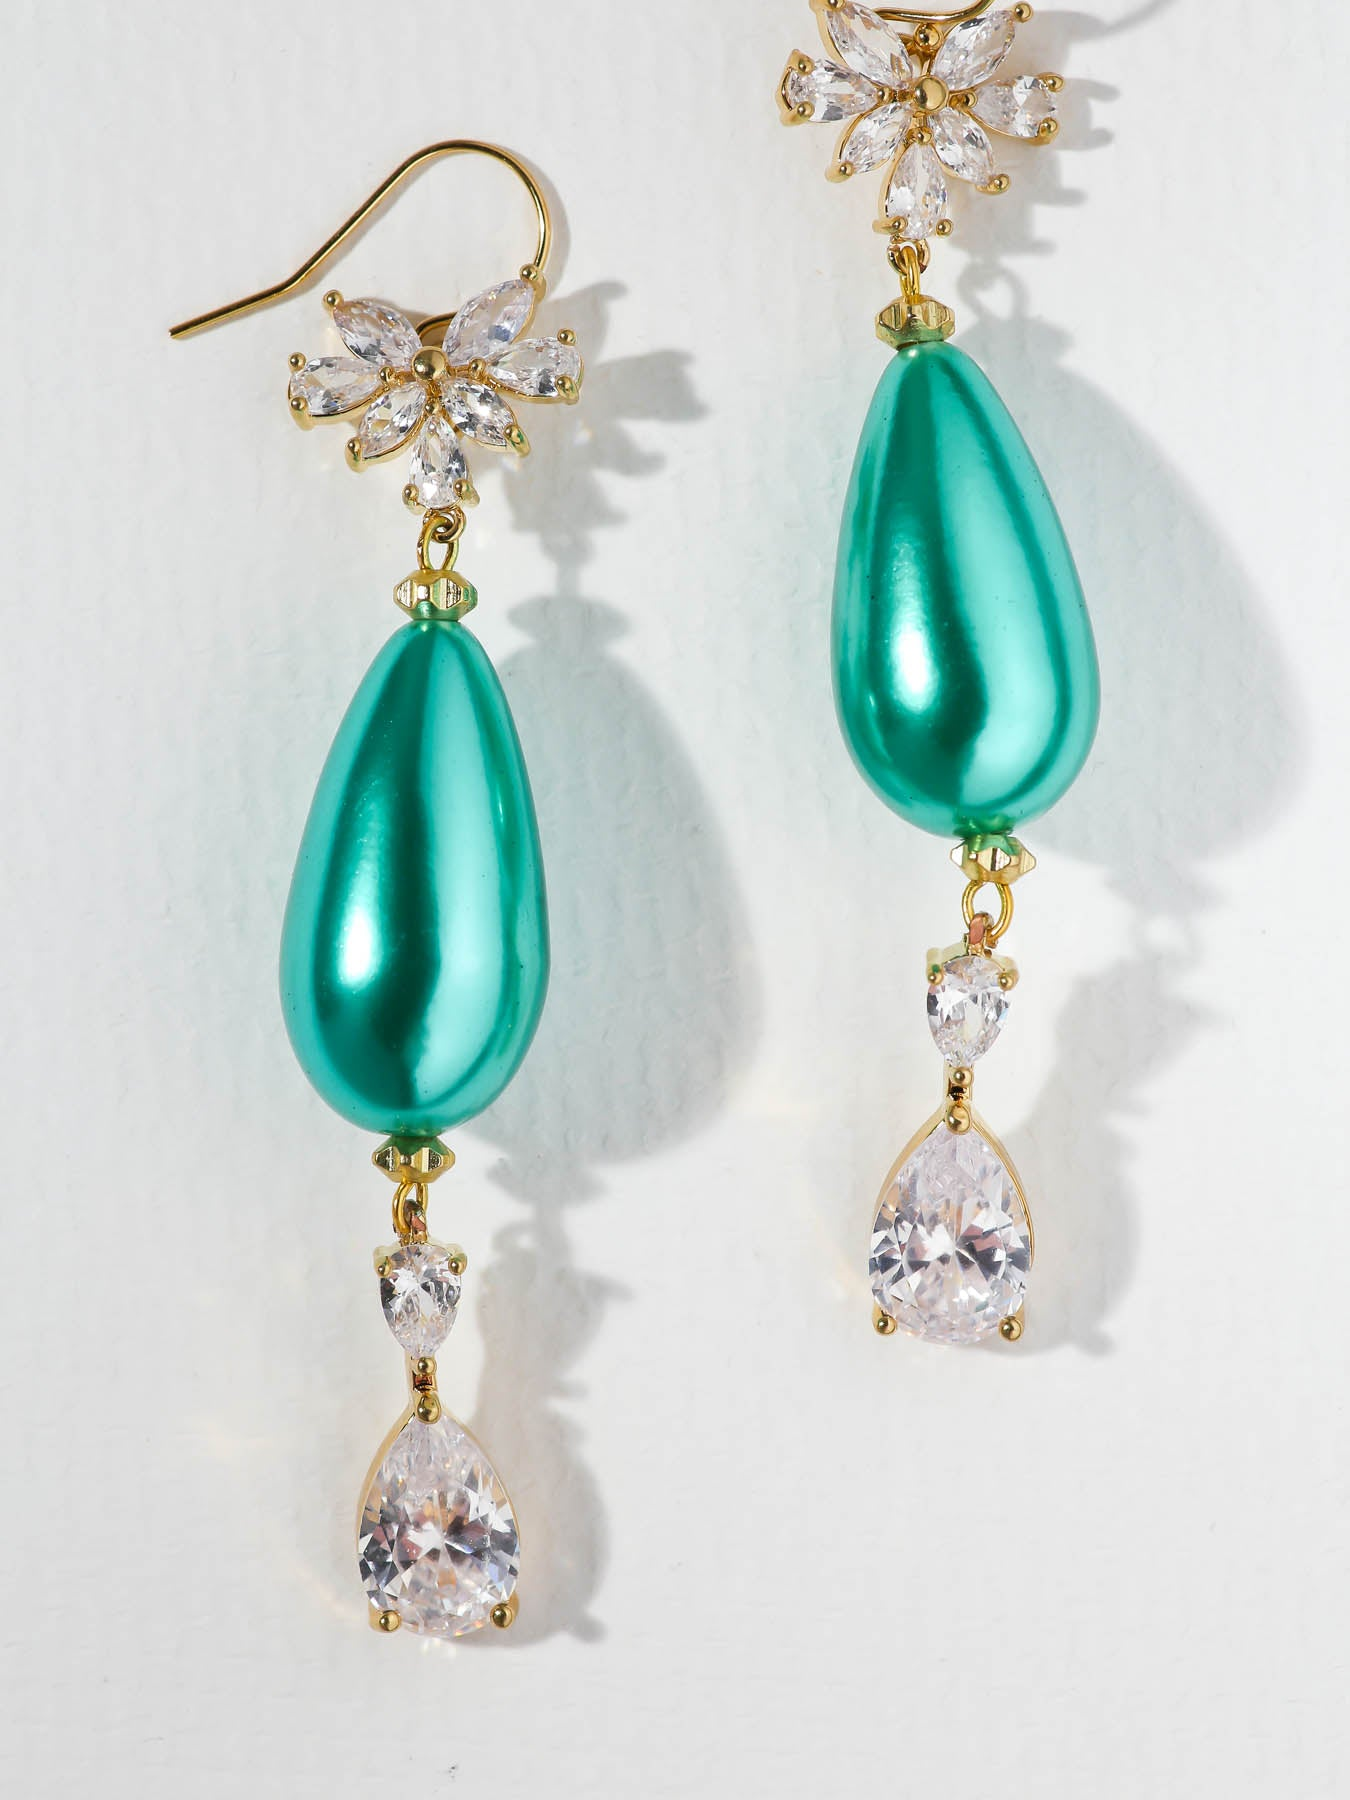 The Camilla Earrings